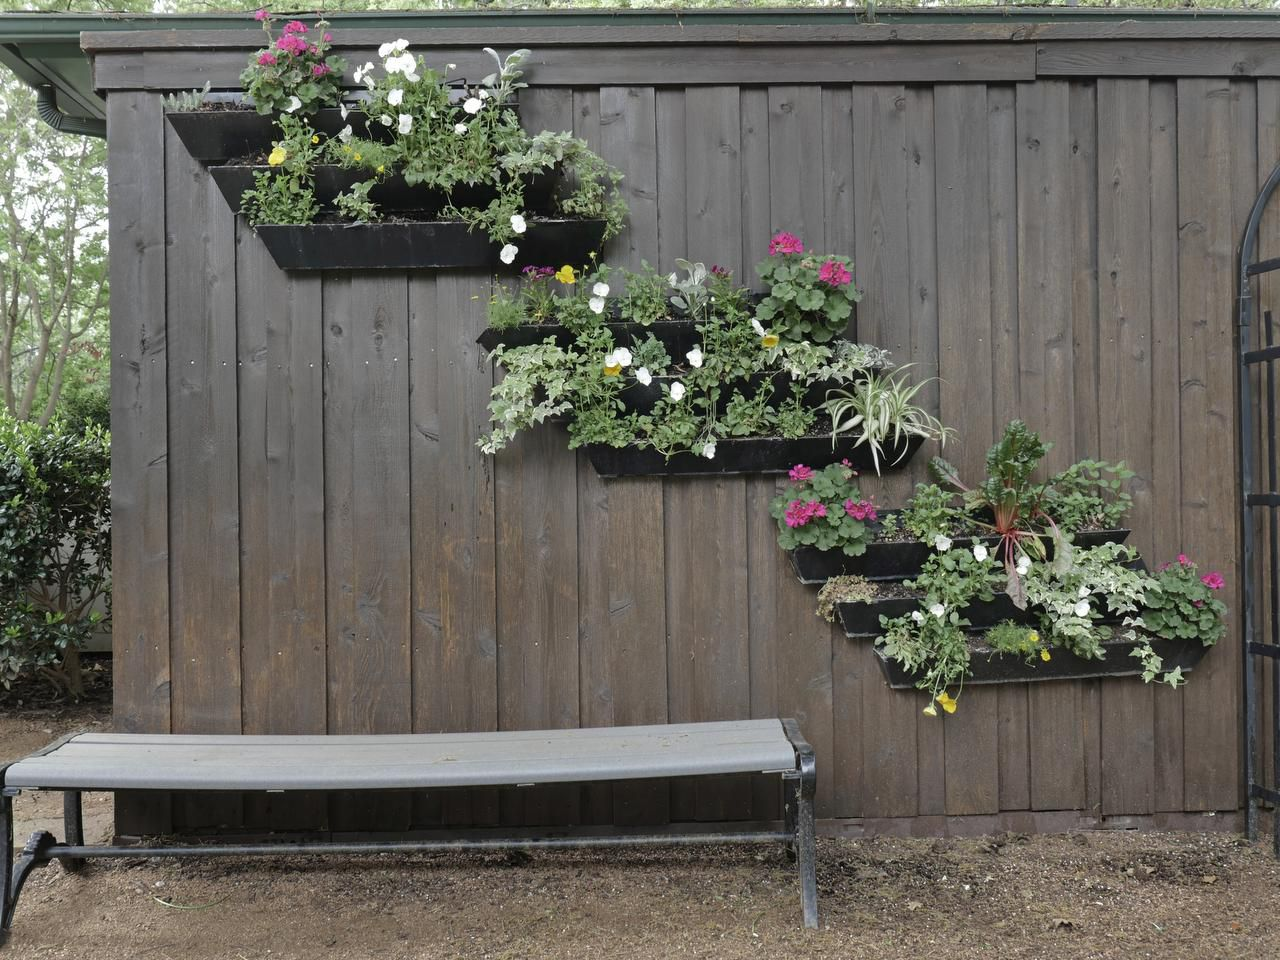 Surprising Vertical Gardening A Creative Use For Wasted Space Short Links Chair Design For Home Short Linksinfo